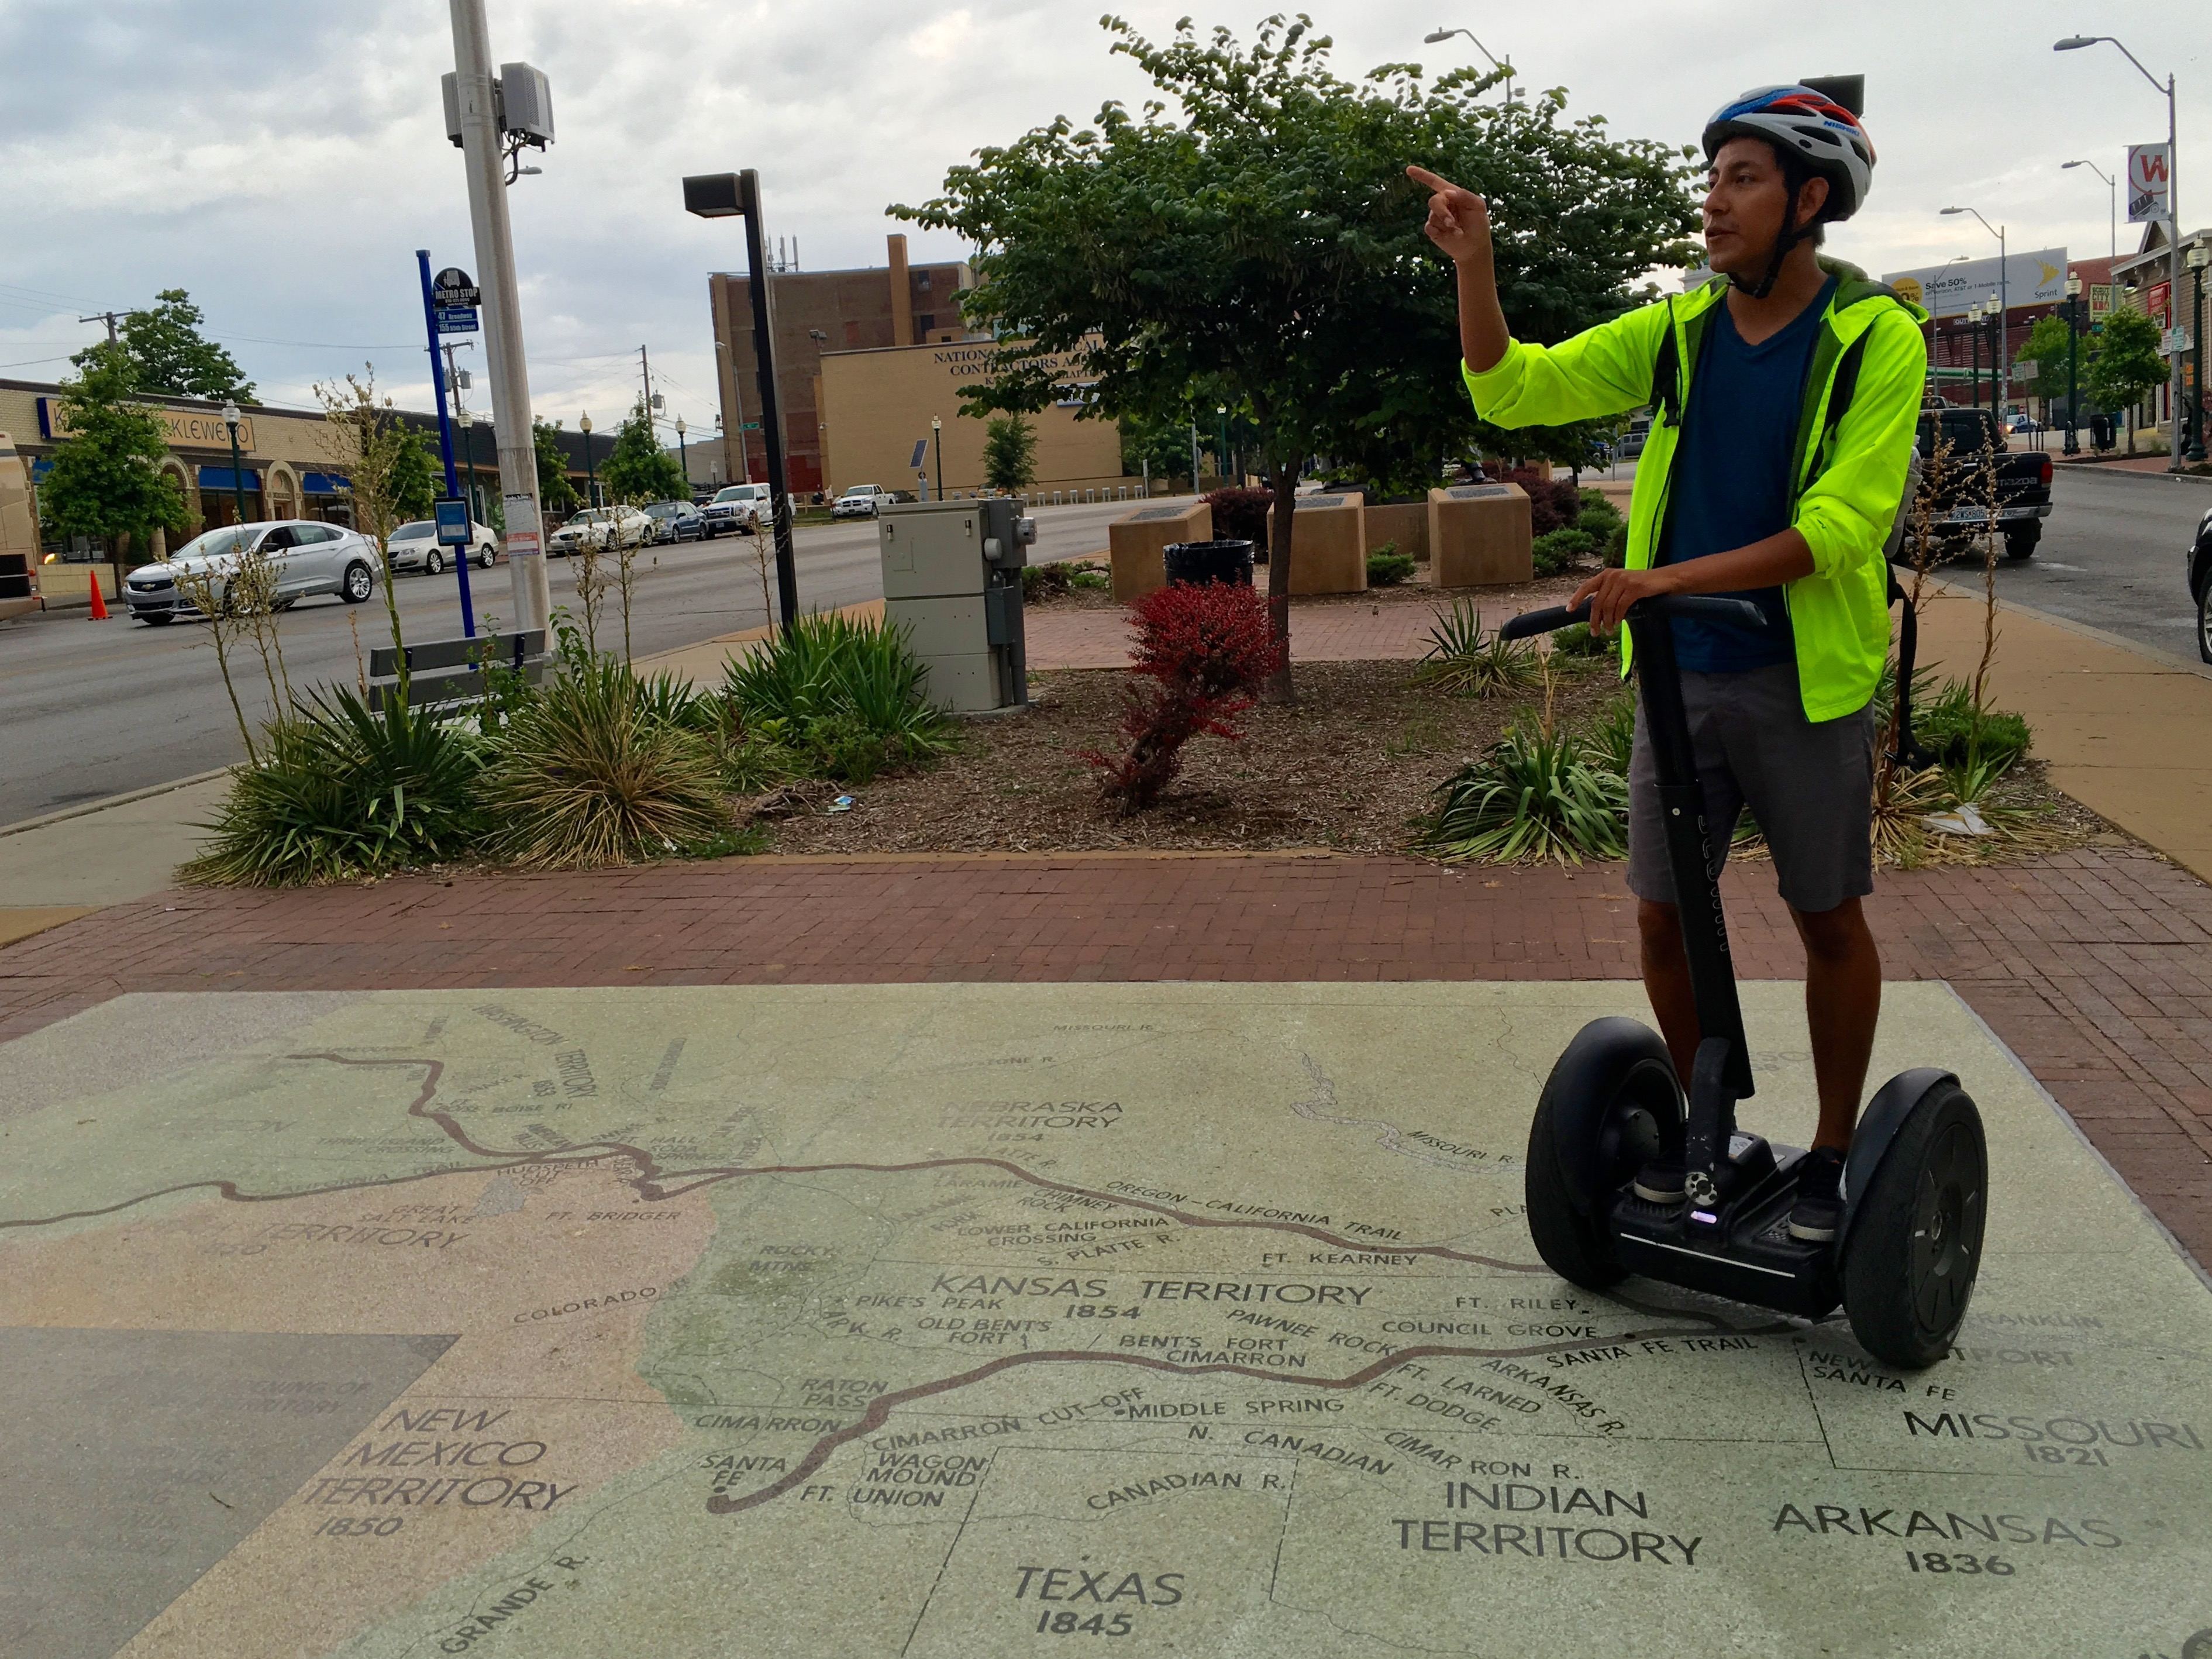 Learn about the sights and stories of Kansas City on this hour Segway tour of the Country Club Plaza area. Comfortably glide through the streets on a Segway while your guide points out important landmarks and sites of interest that tell the tale of this eclectic city.5/5(3).